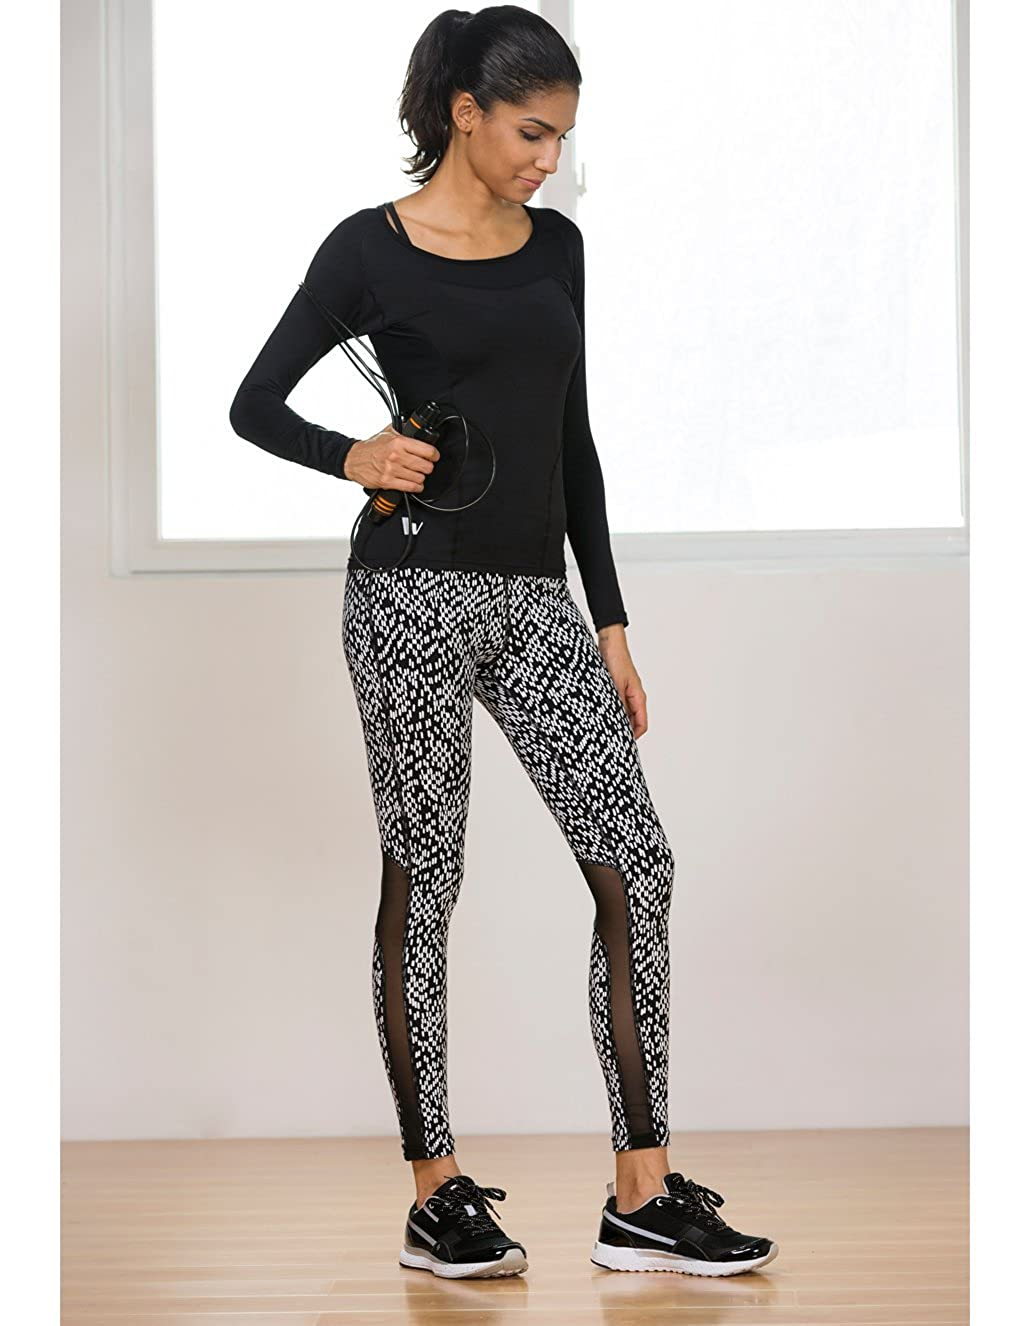 Showtime Womens Athletic Leggings Fitness Workout Yoga Gym Running Tight Pants